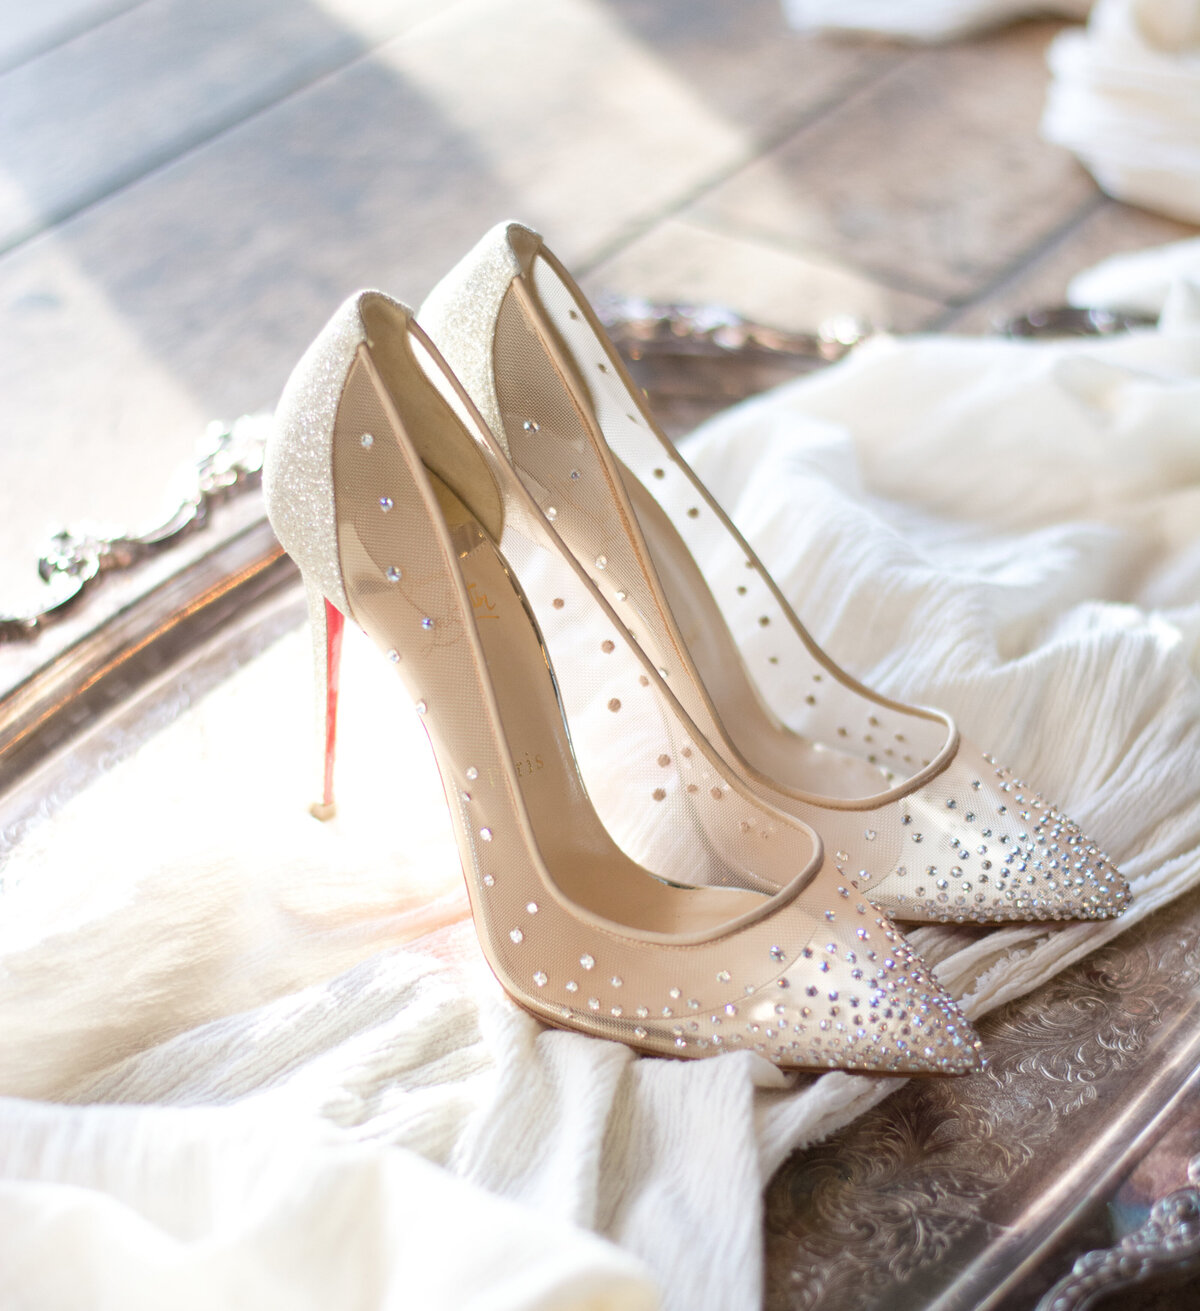 Christian Louboutin wedding shoes on tray